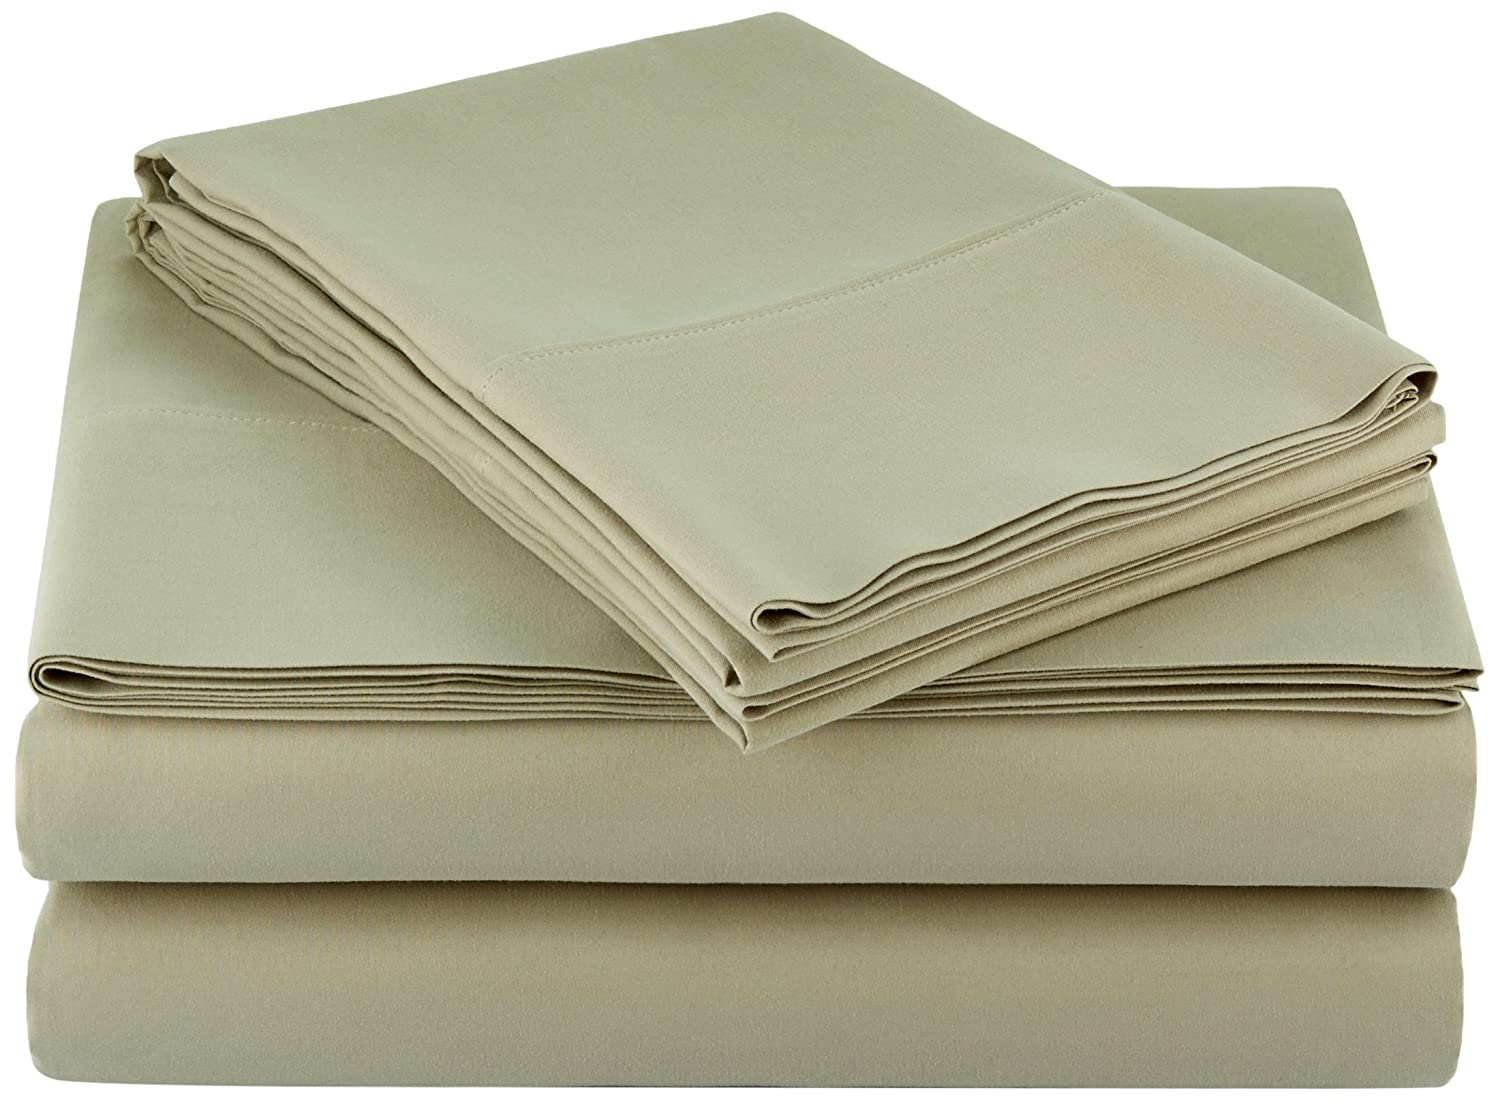 AmazonBasics Microfiber Sheet Set - Queen, Olive